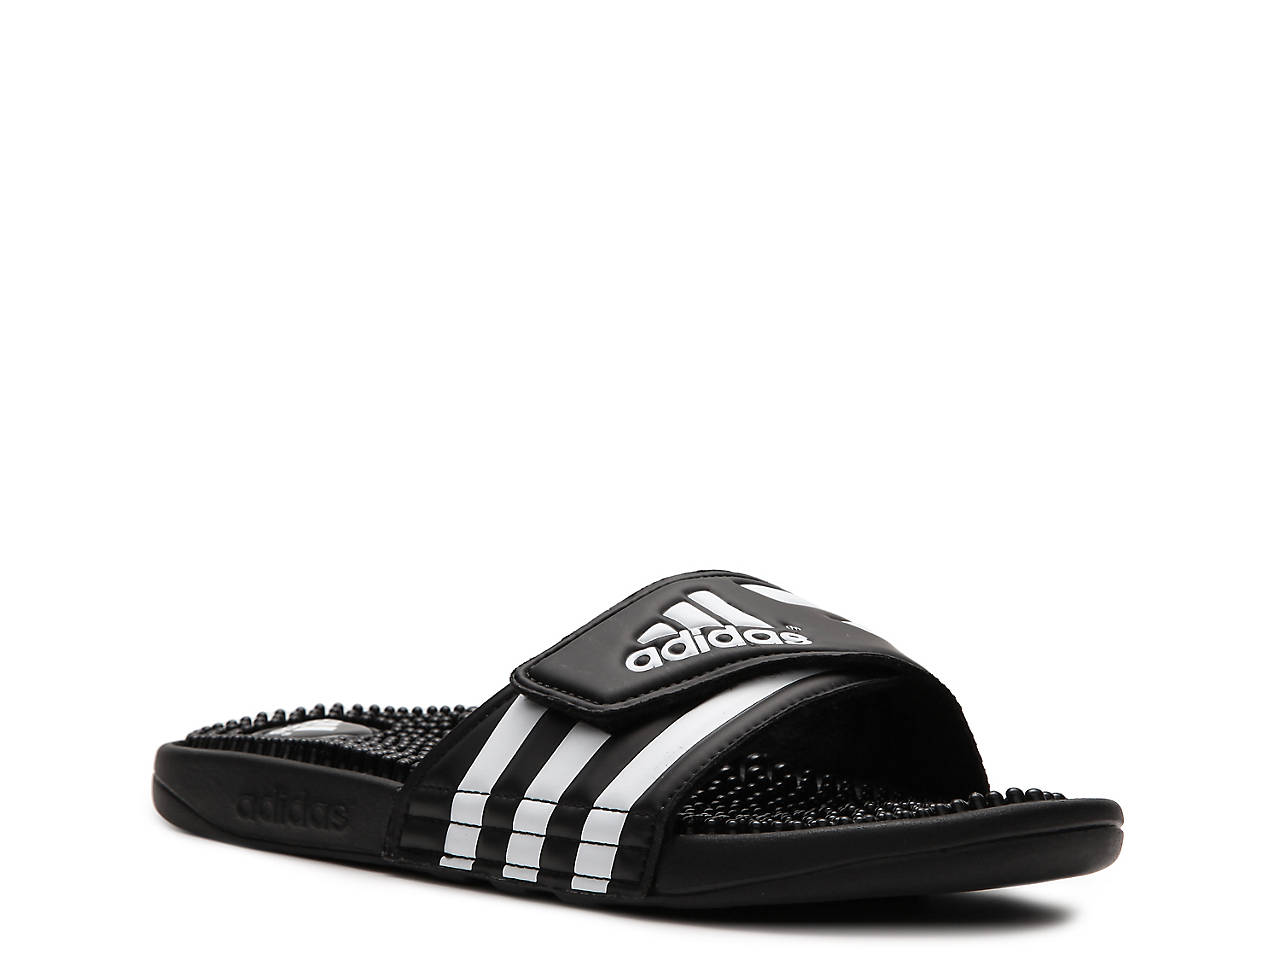 Adissage Slide Sandal - Women's